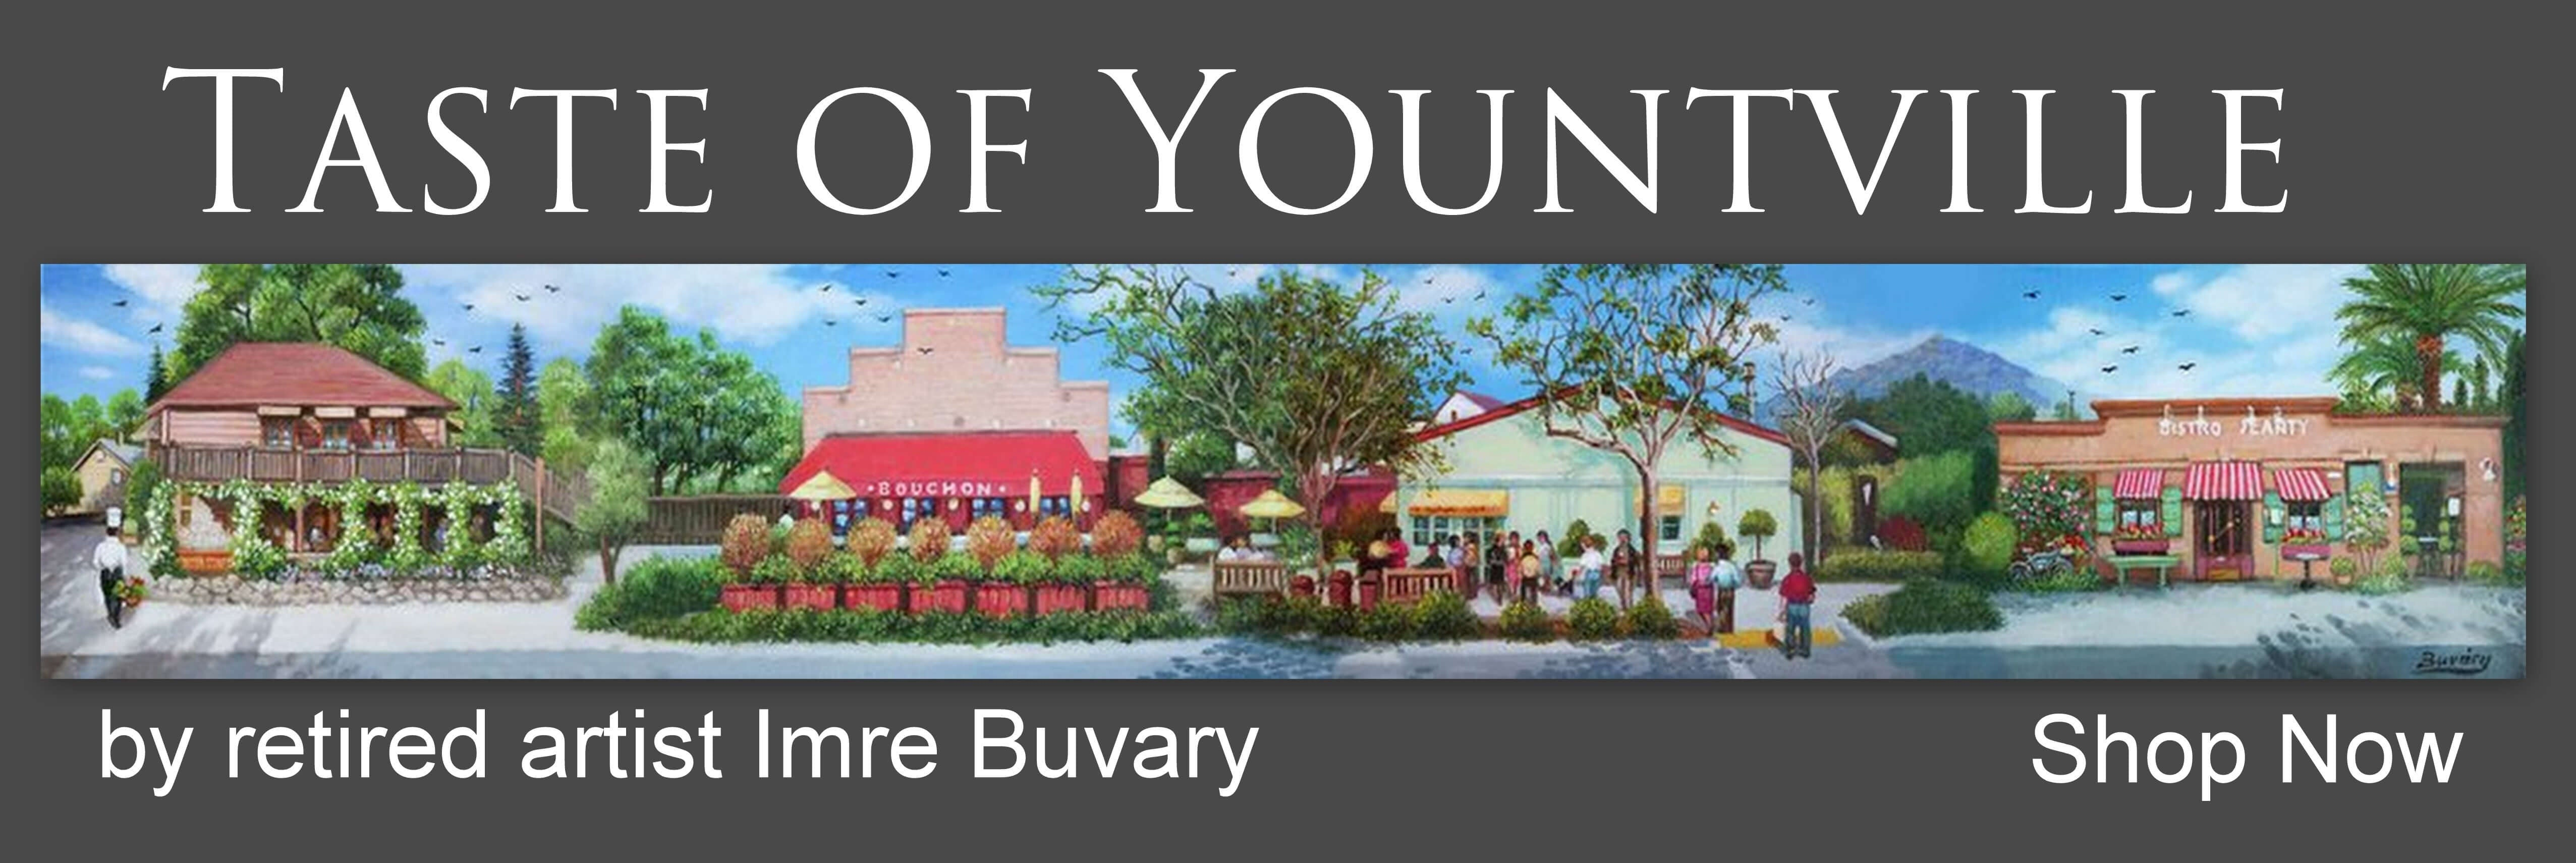 Taste of Yountville by Imre Buvary